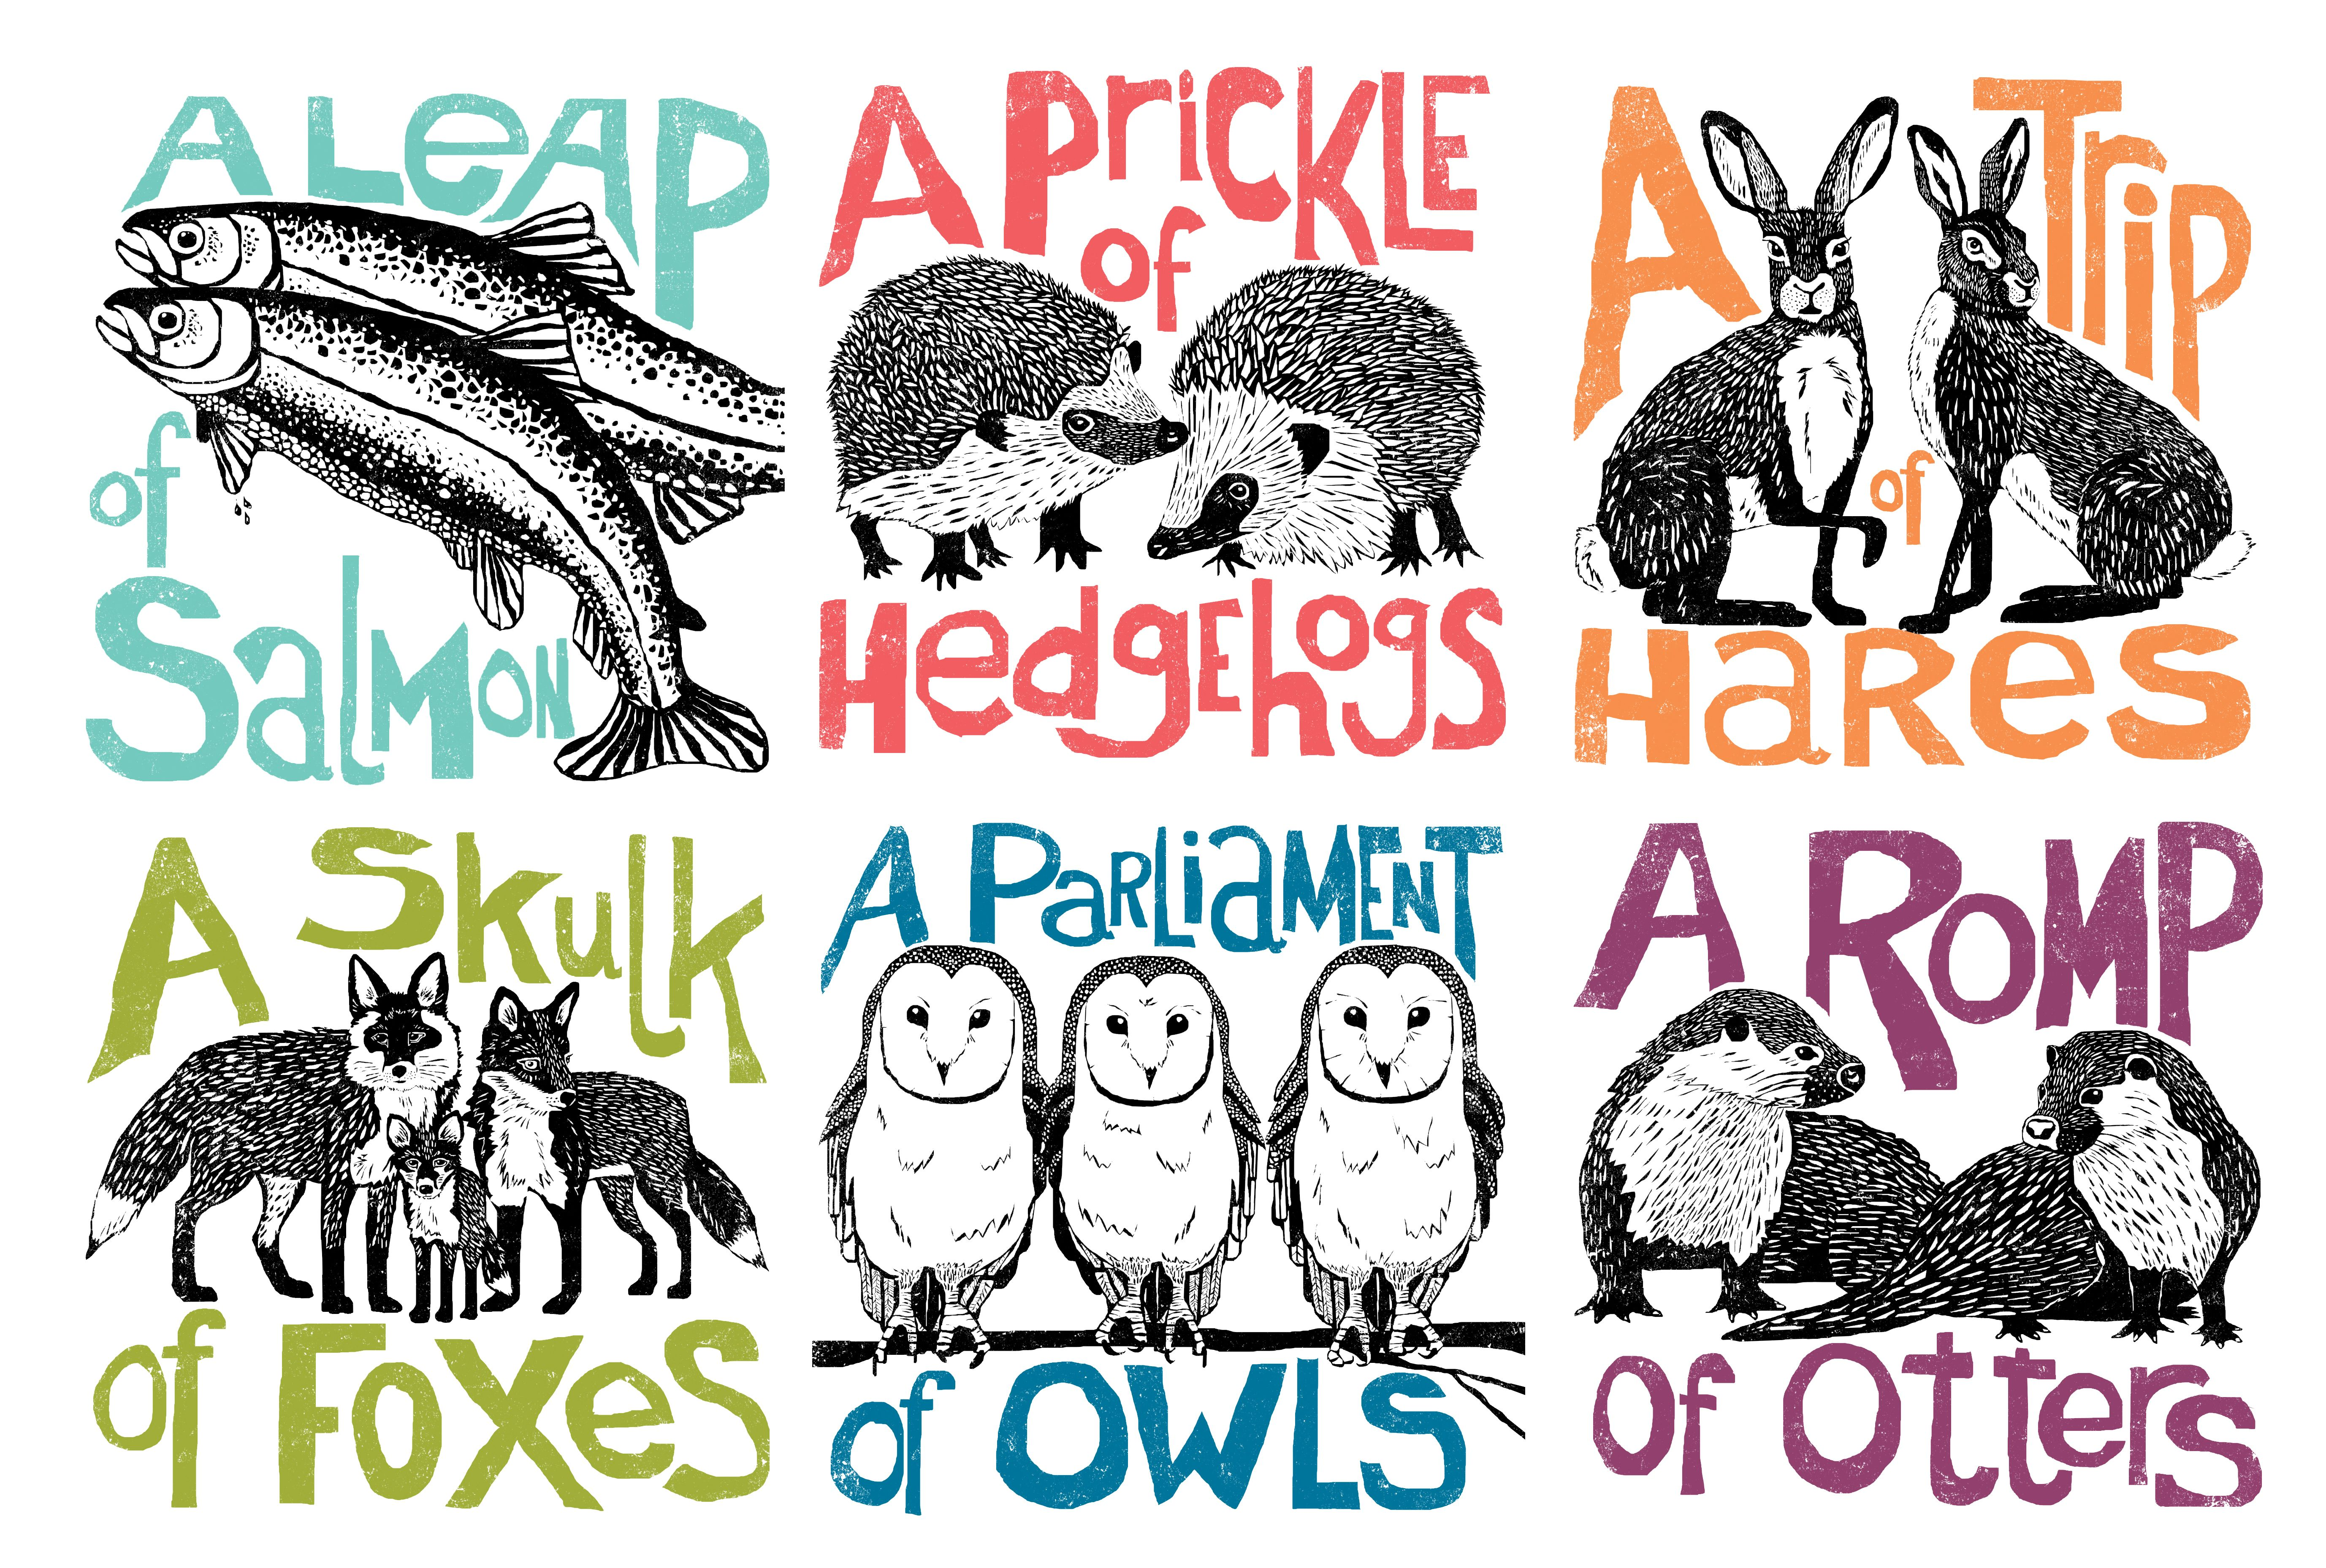 In today's post, I'd like to look at collective nouns and